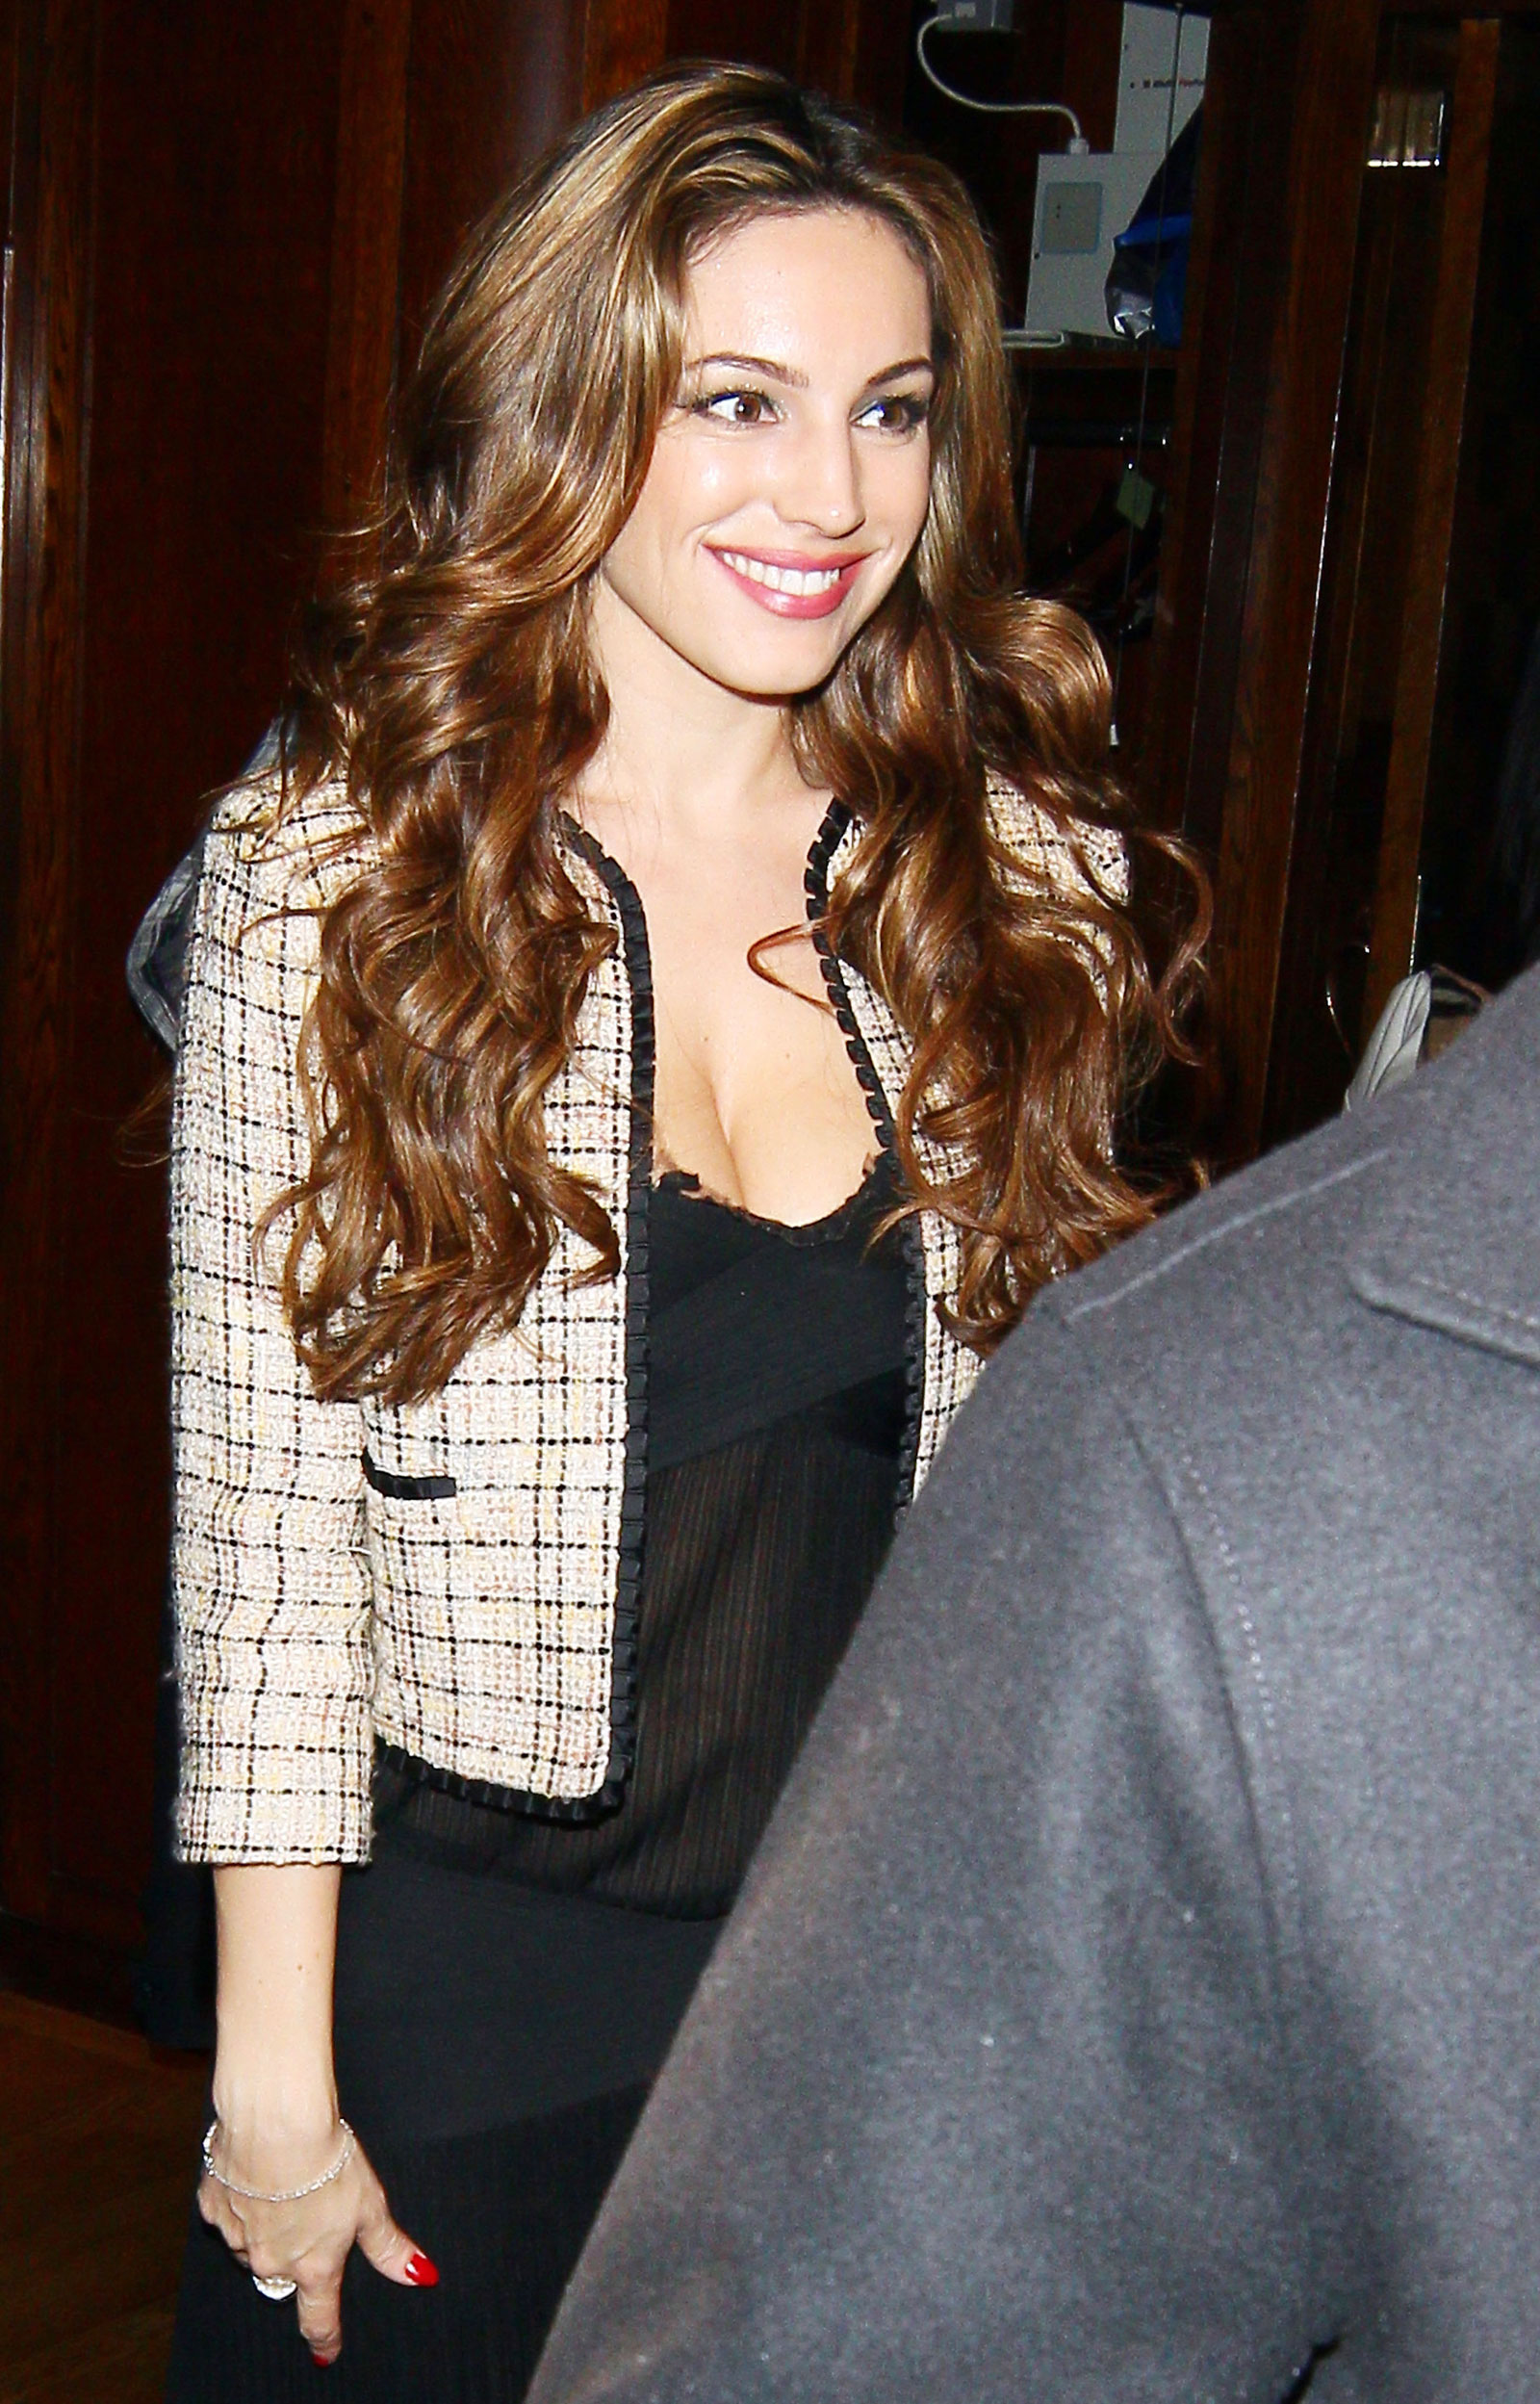 Kelly Brook On Her 32nd Birthday At The Ivy Restaurant In